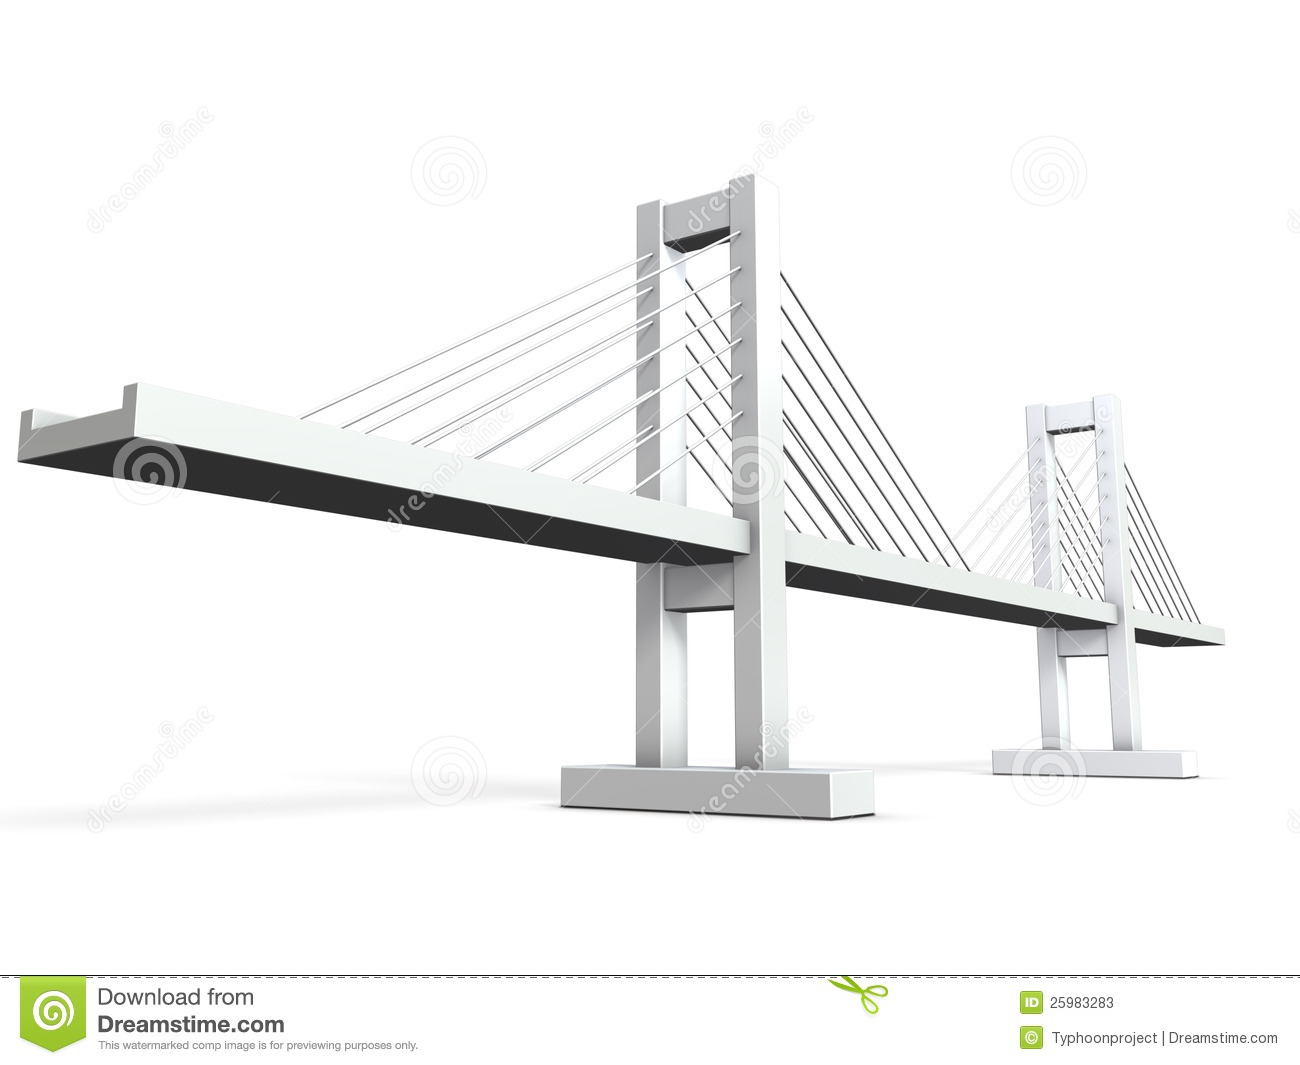 Architectural Models Of Cable Stayed Bridge Stock